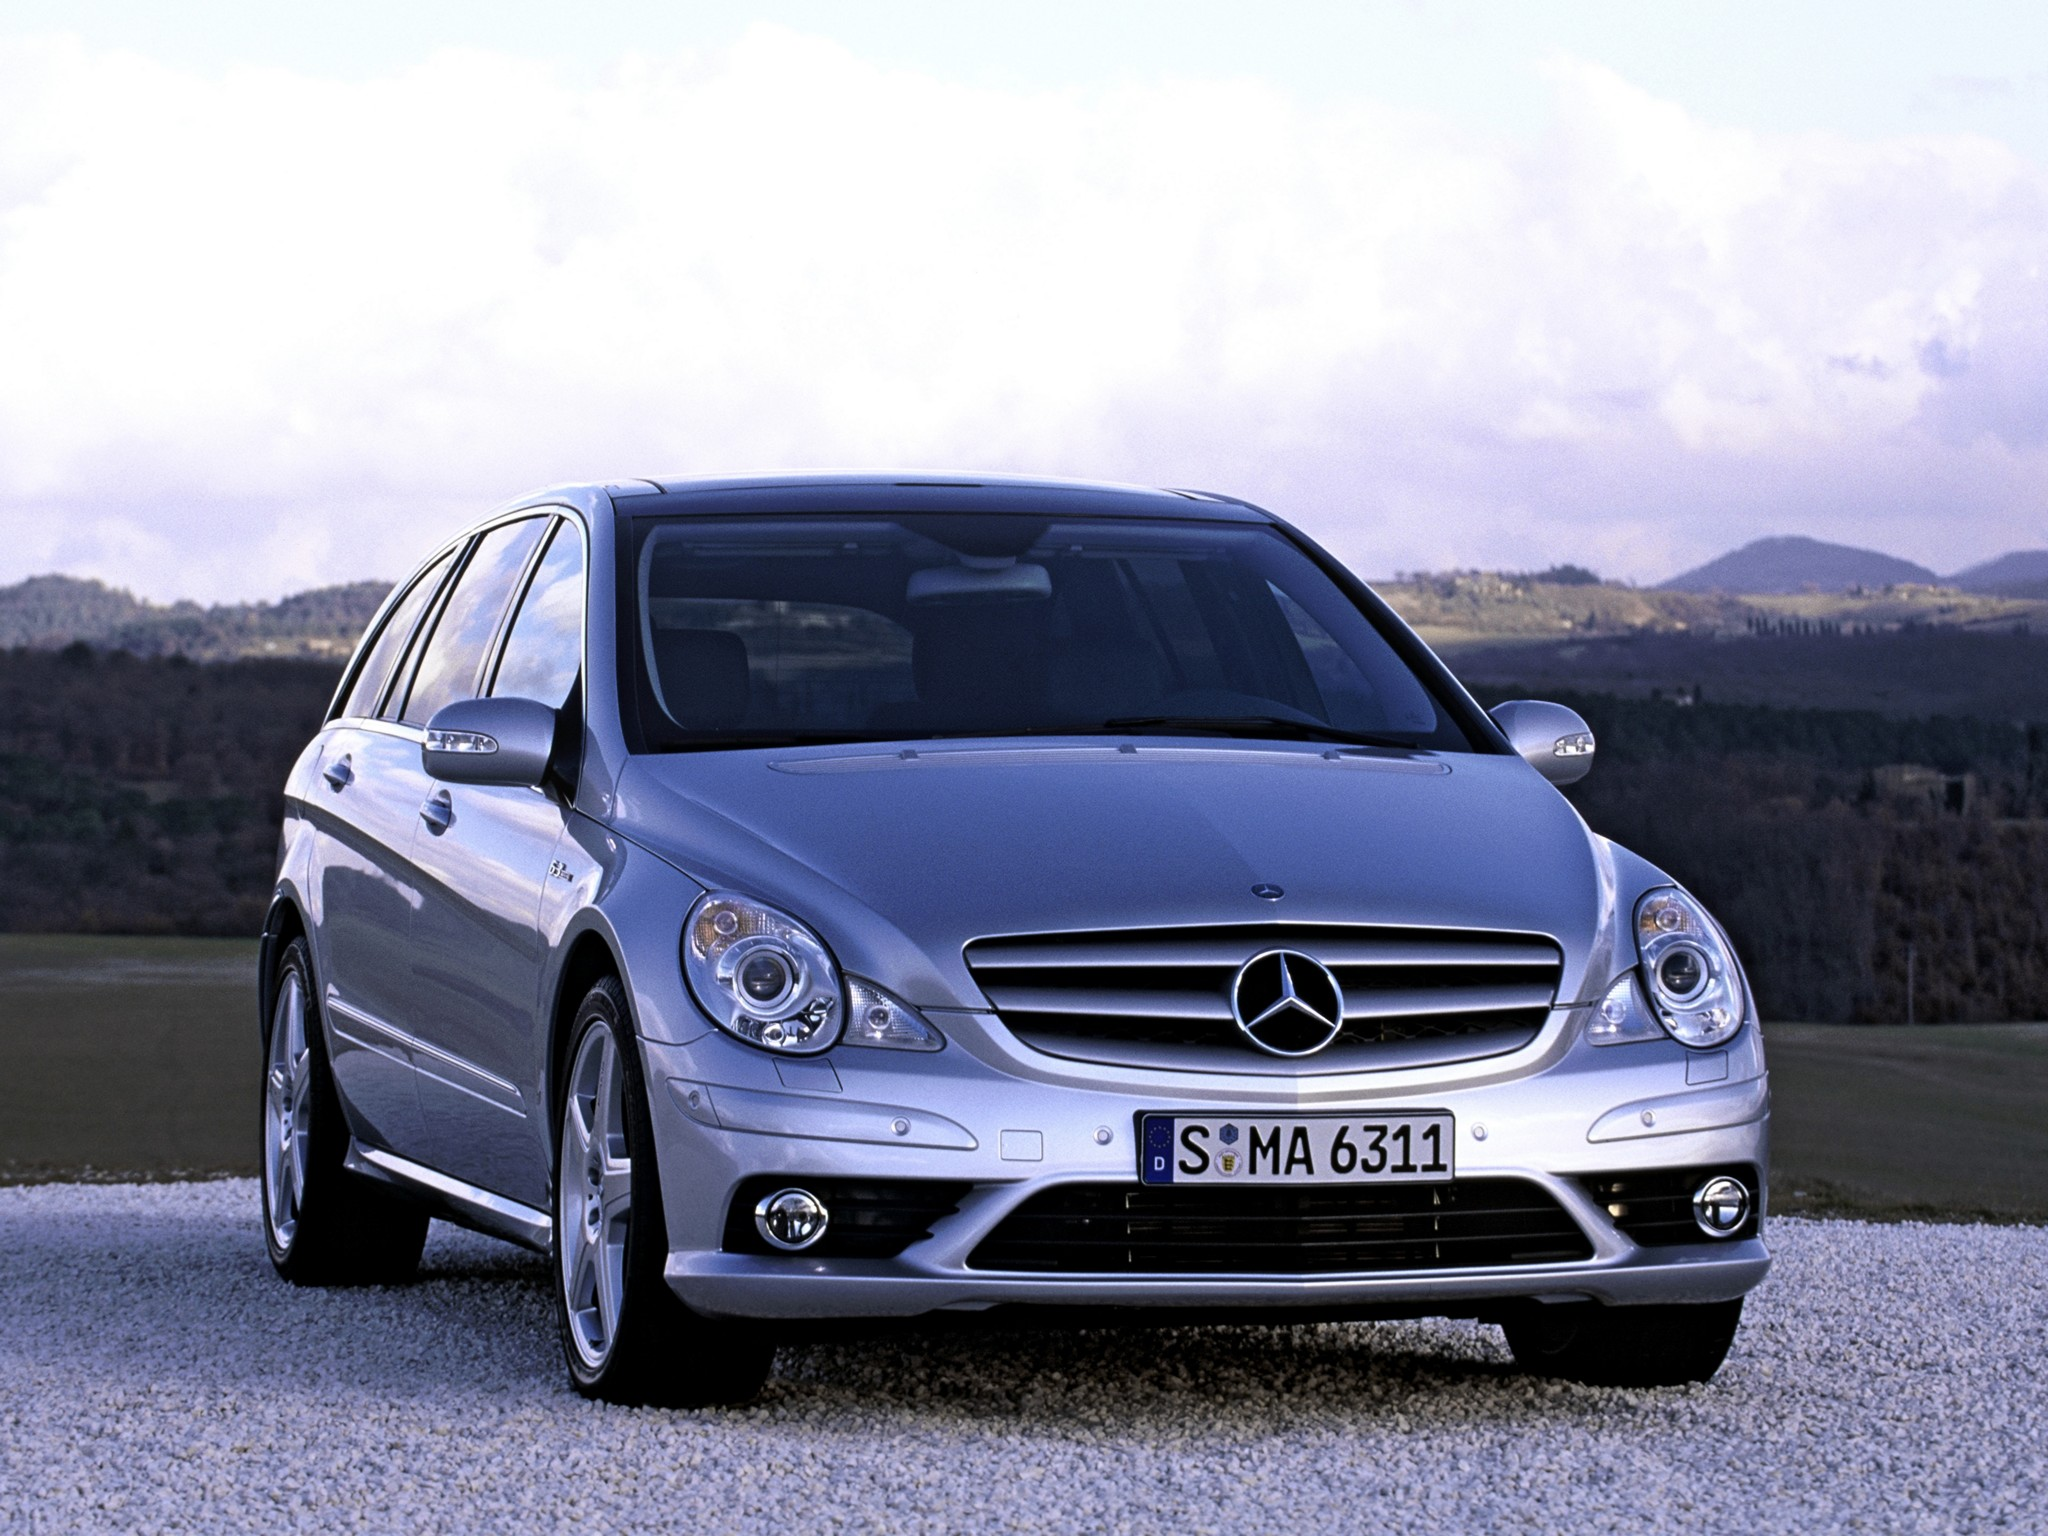 Mercedes benz r class photos photogallery with 57 pics for 57 mercedes benz